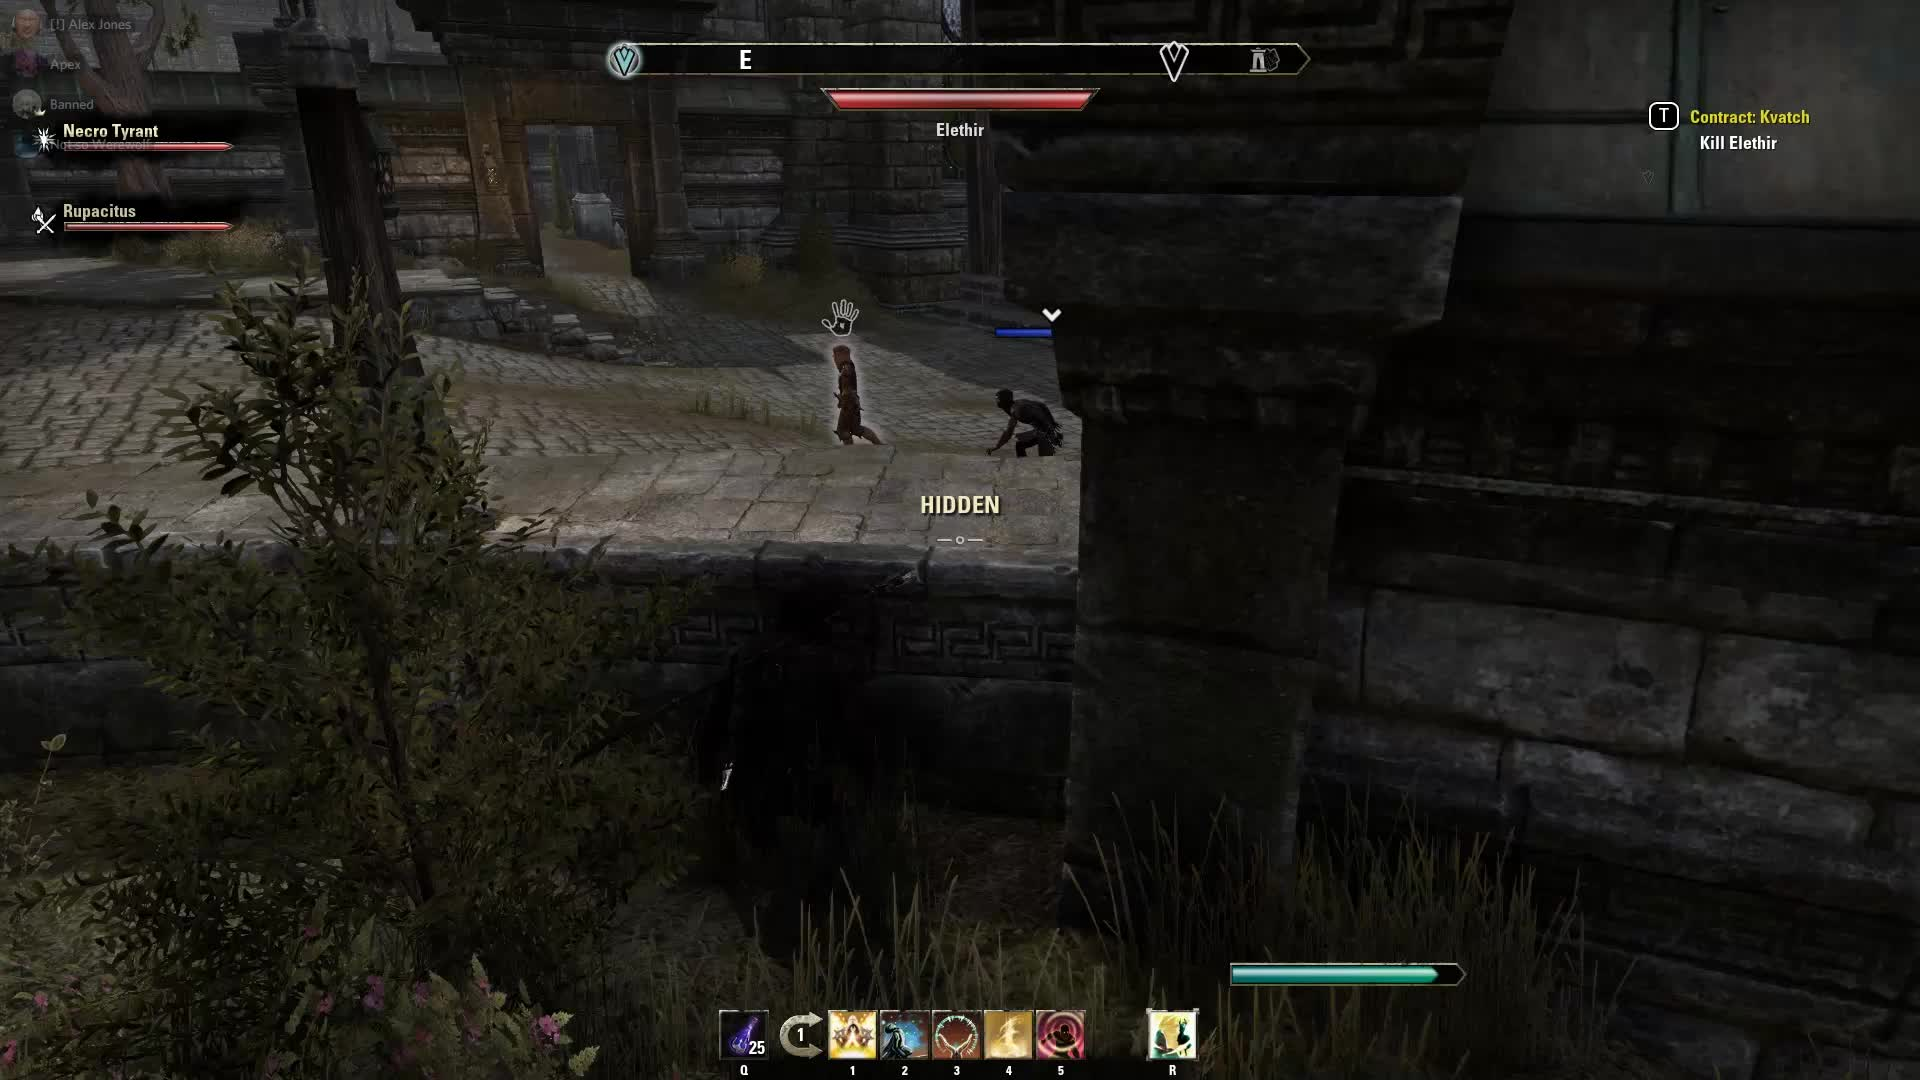 elderscrollsonline, ESO Dark brotherhood GIFs